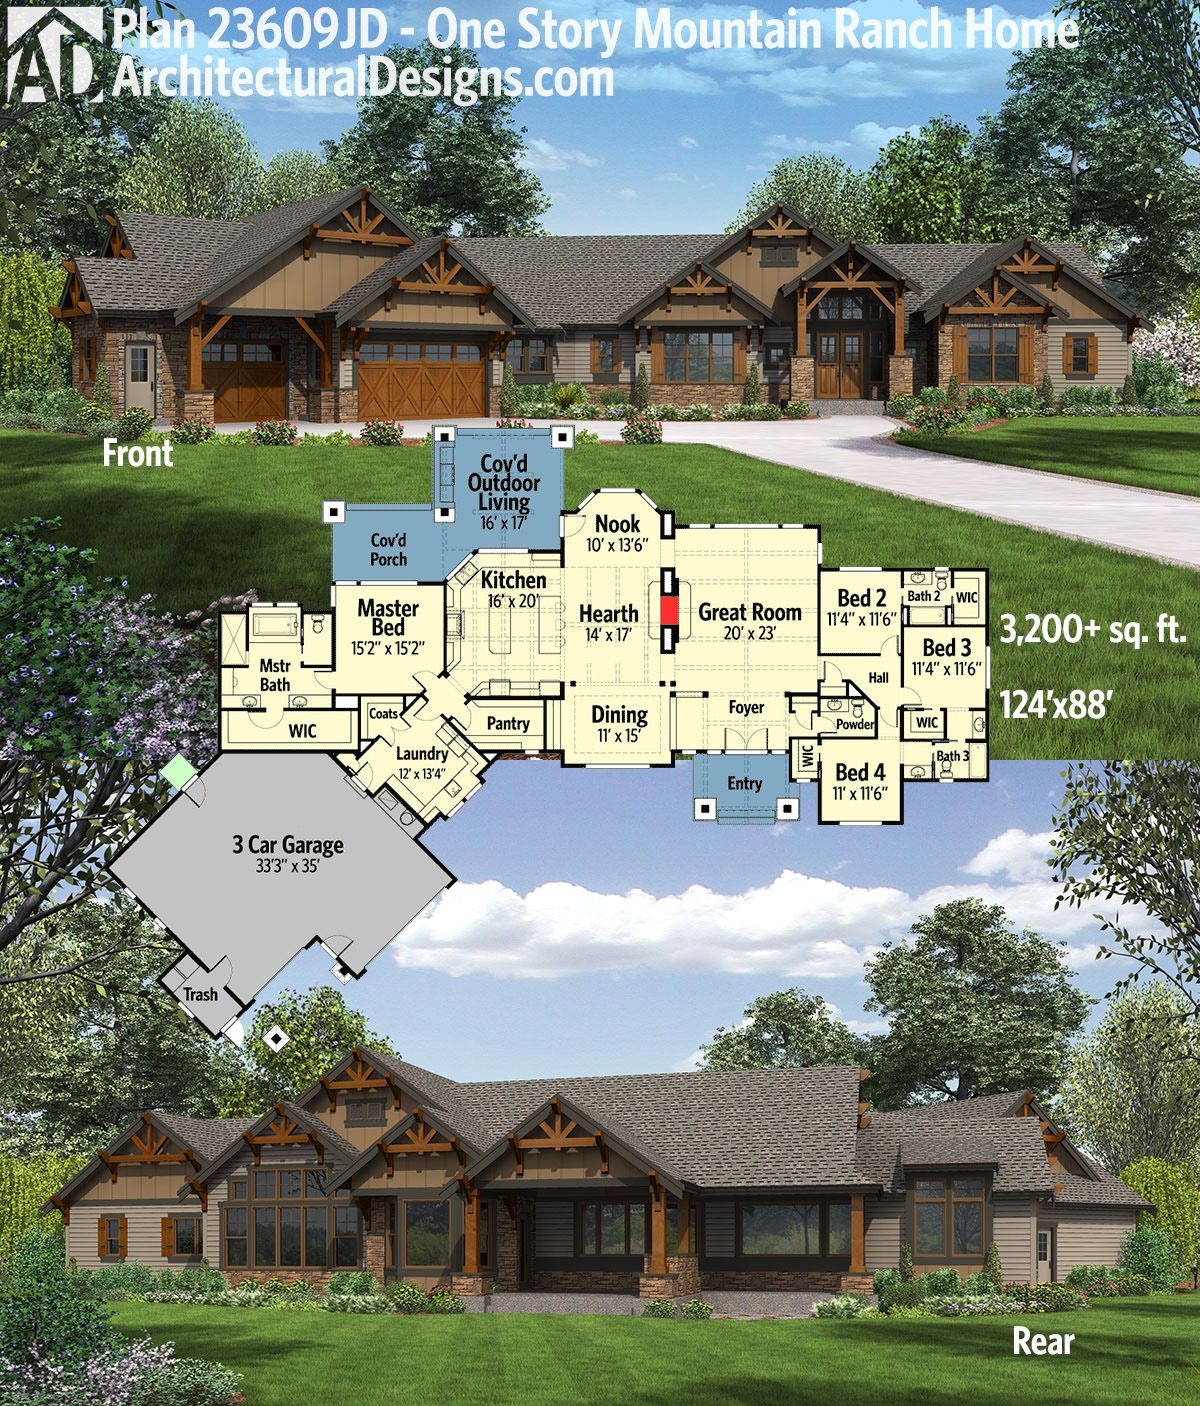 Plan 23609jd one story mountain ranch home with options High end house plans